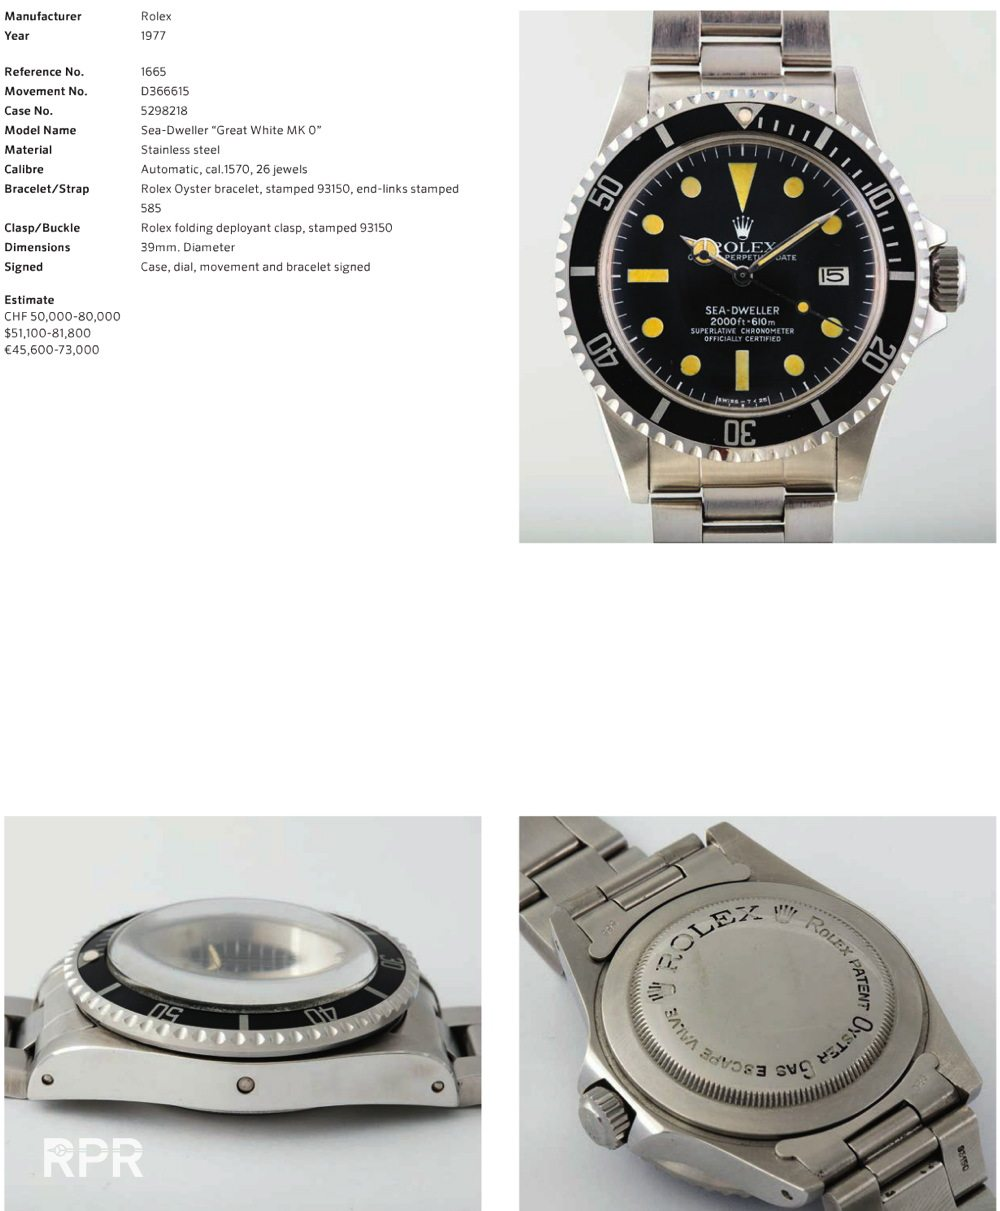 RPR_Rolex_geneva_auction_2015_127